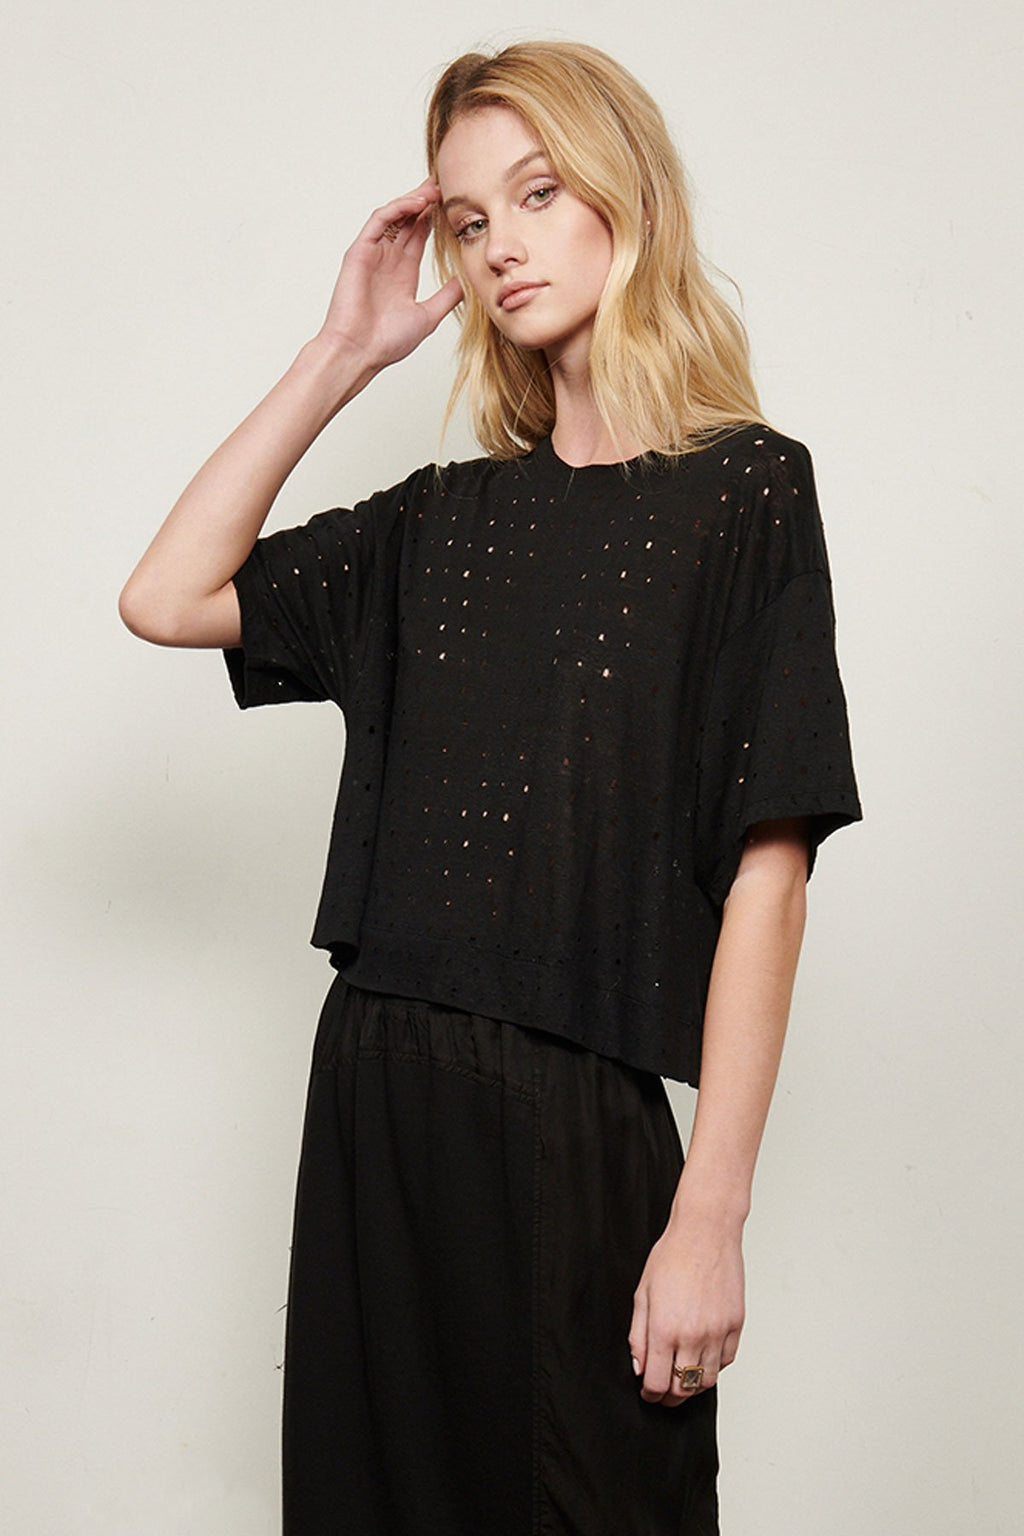 Exclusive Laser Cut Distressed Linen Tee in Black by Burning Torch